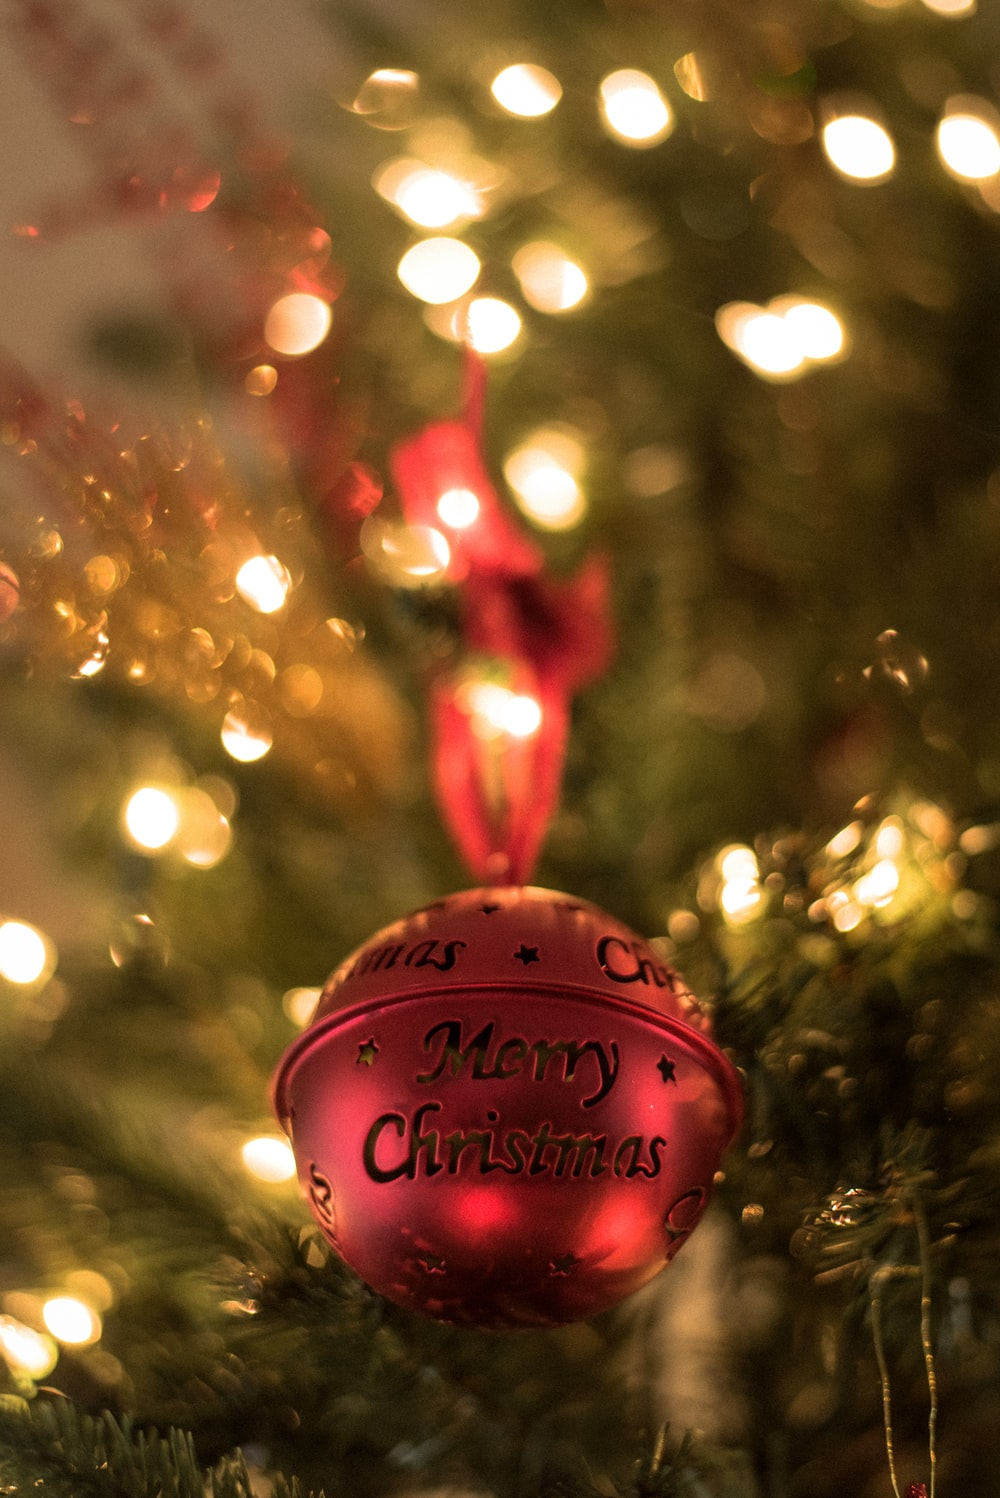 900 Christmas Background Download HD Backgrounds On